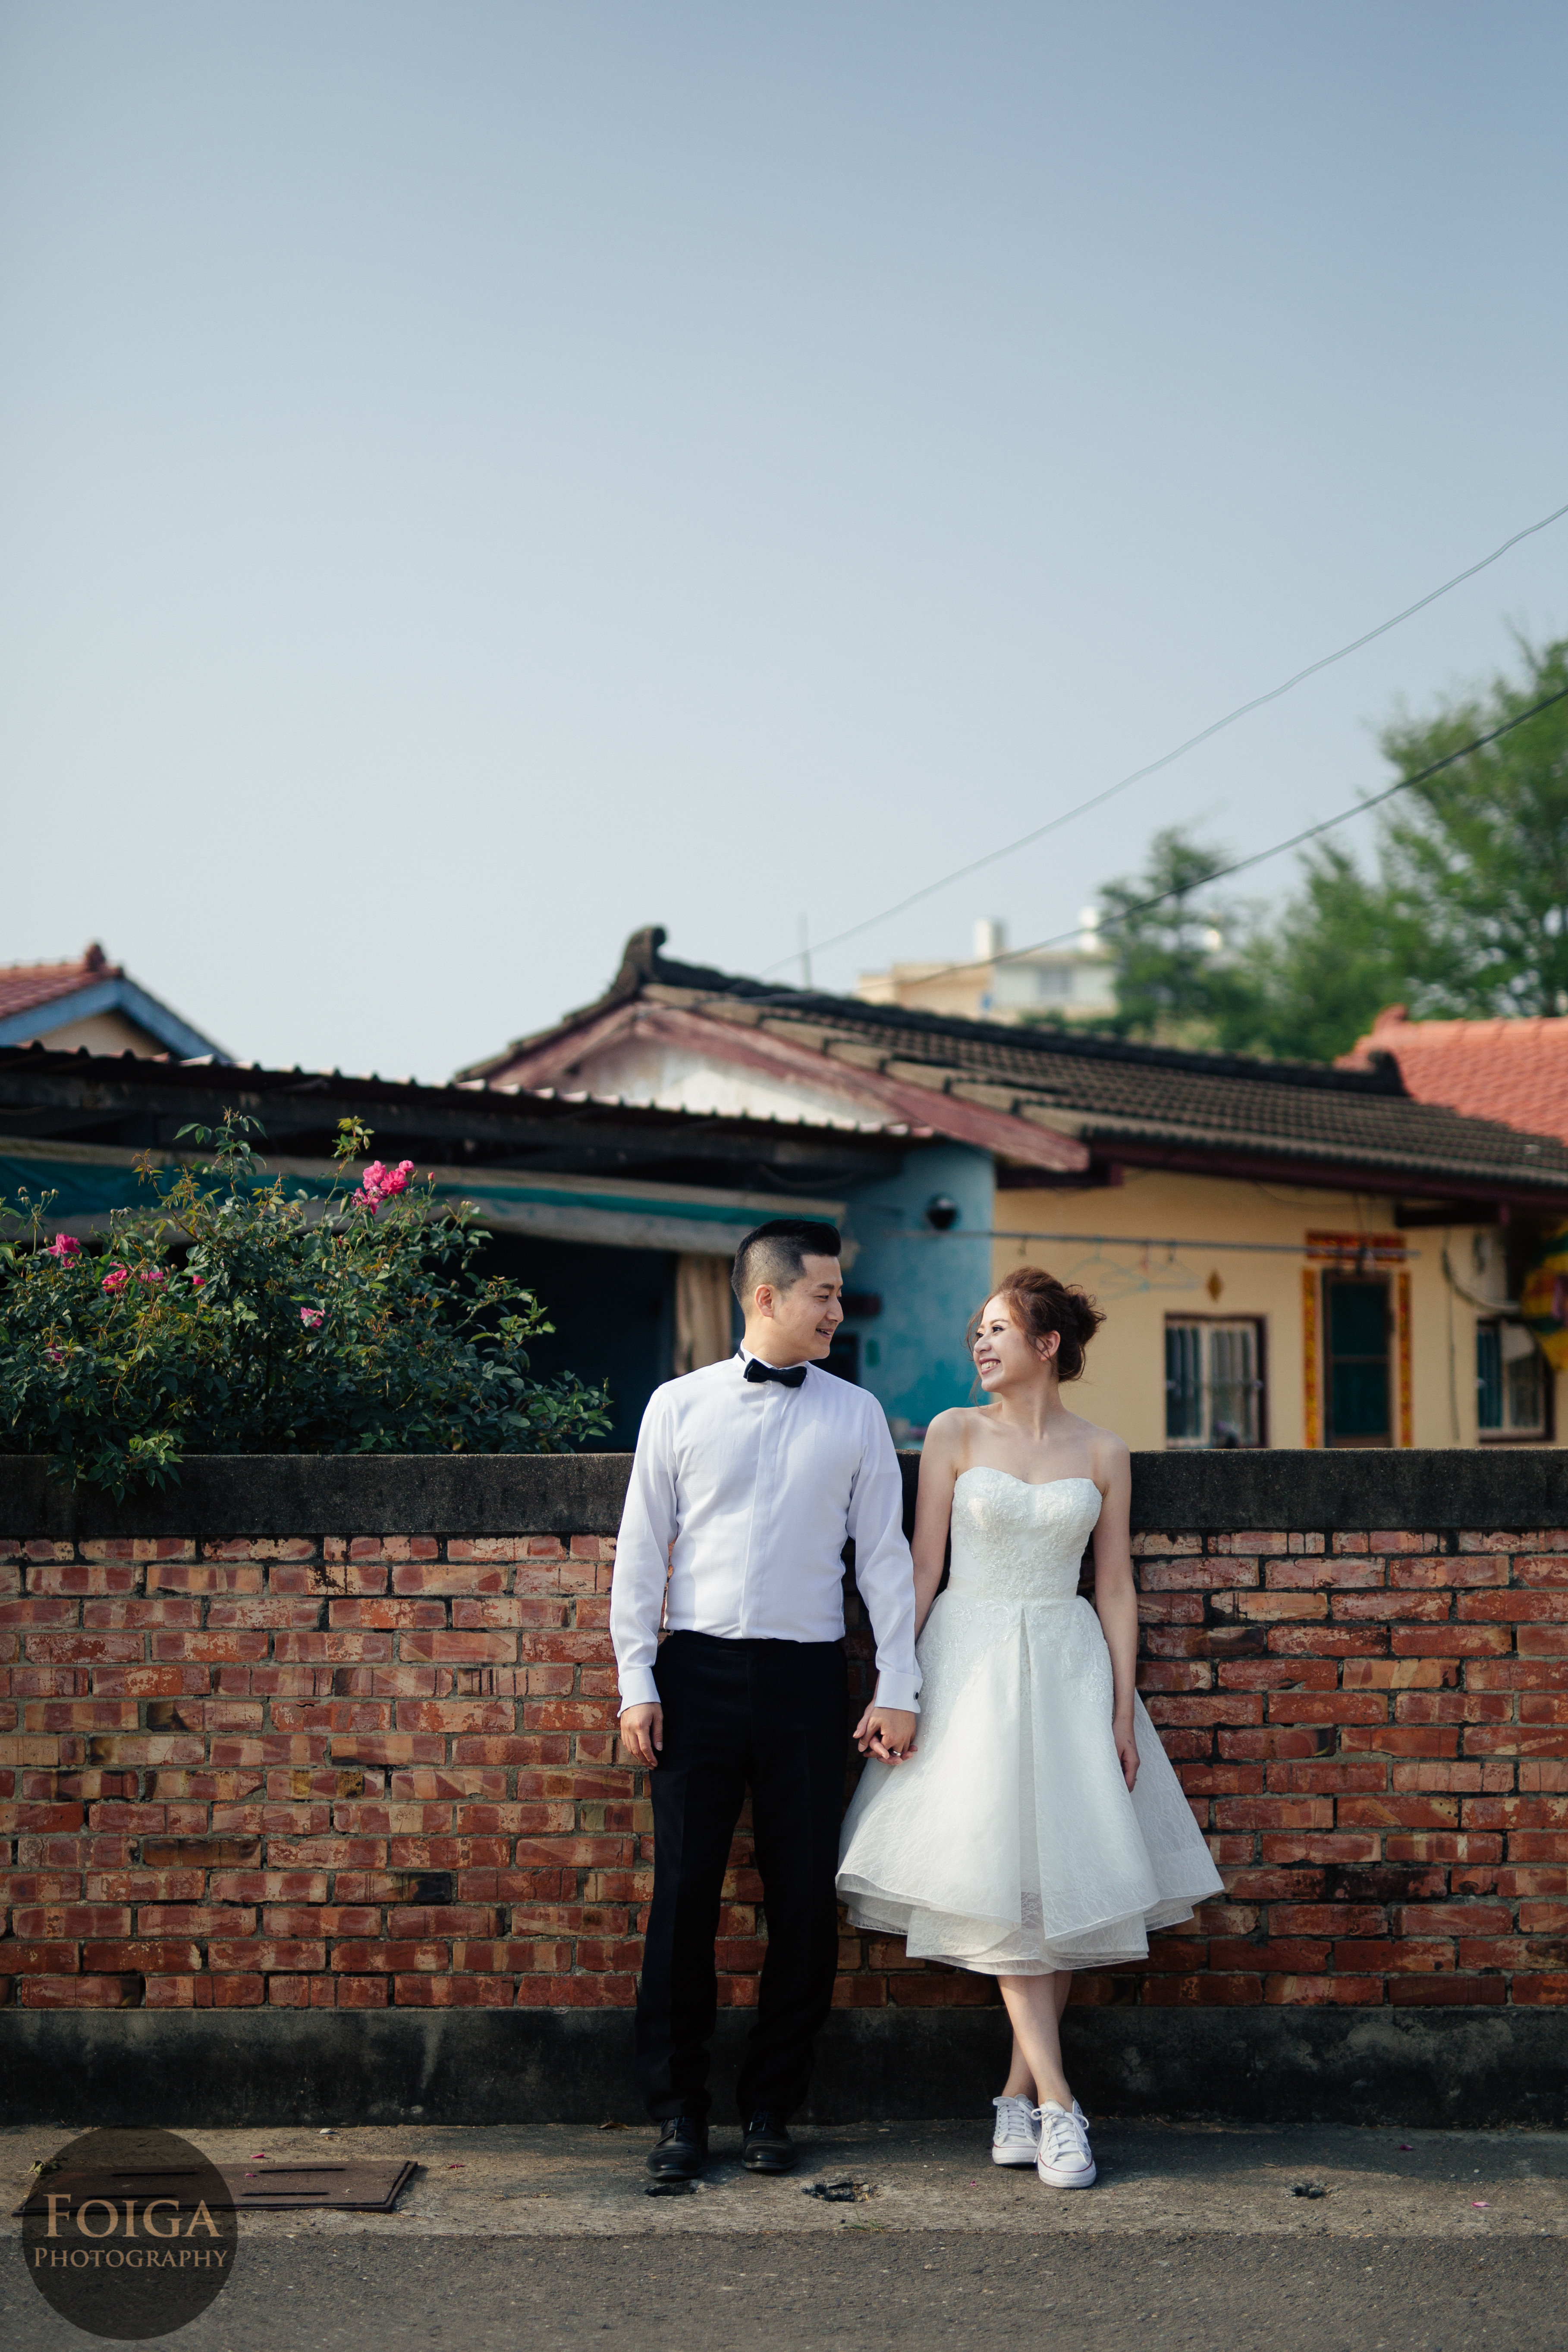 JasonandAmy_PreWedding-301